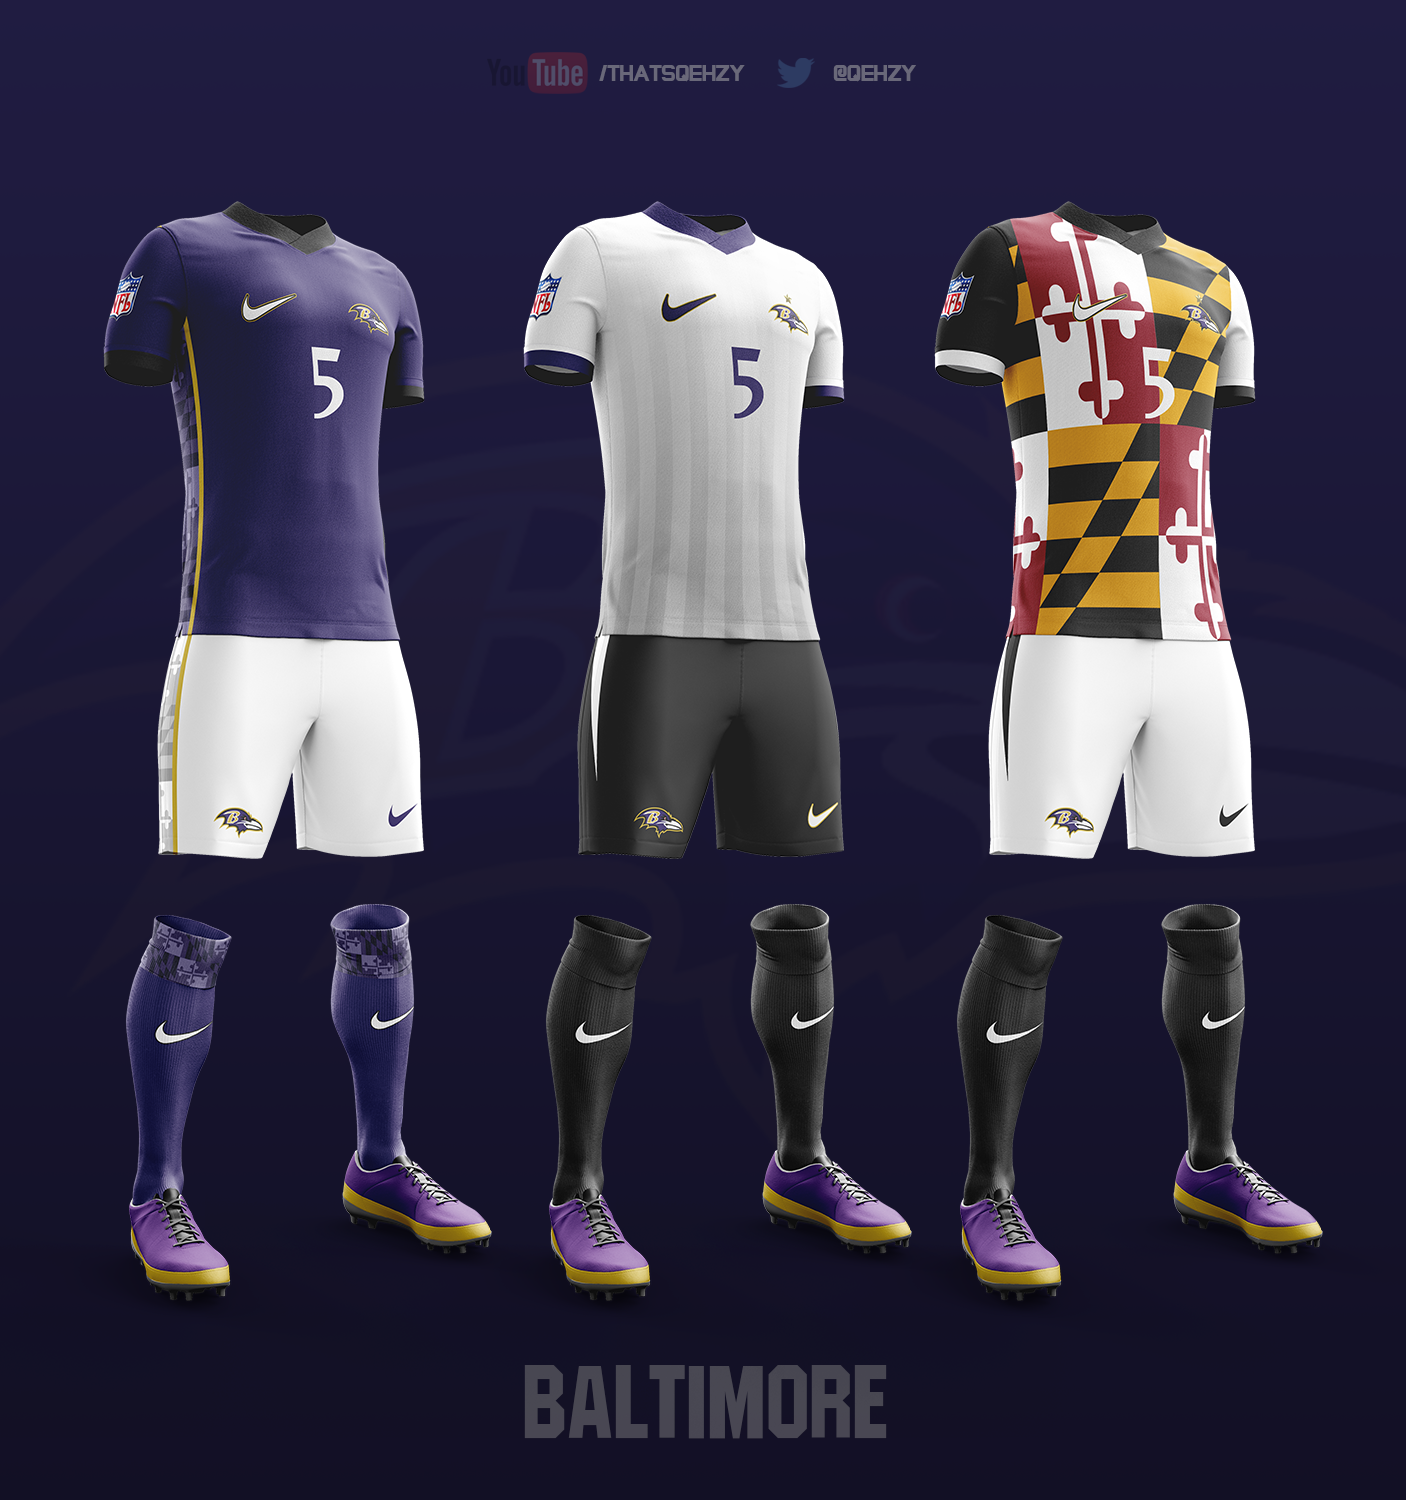 Soccer Kits for All 32 NFL Teams